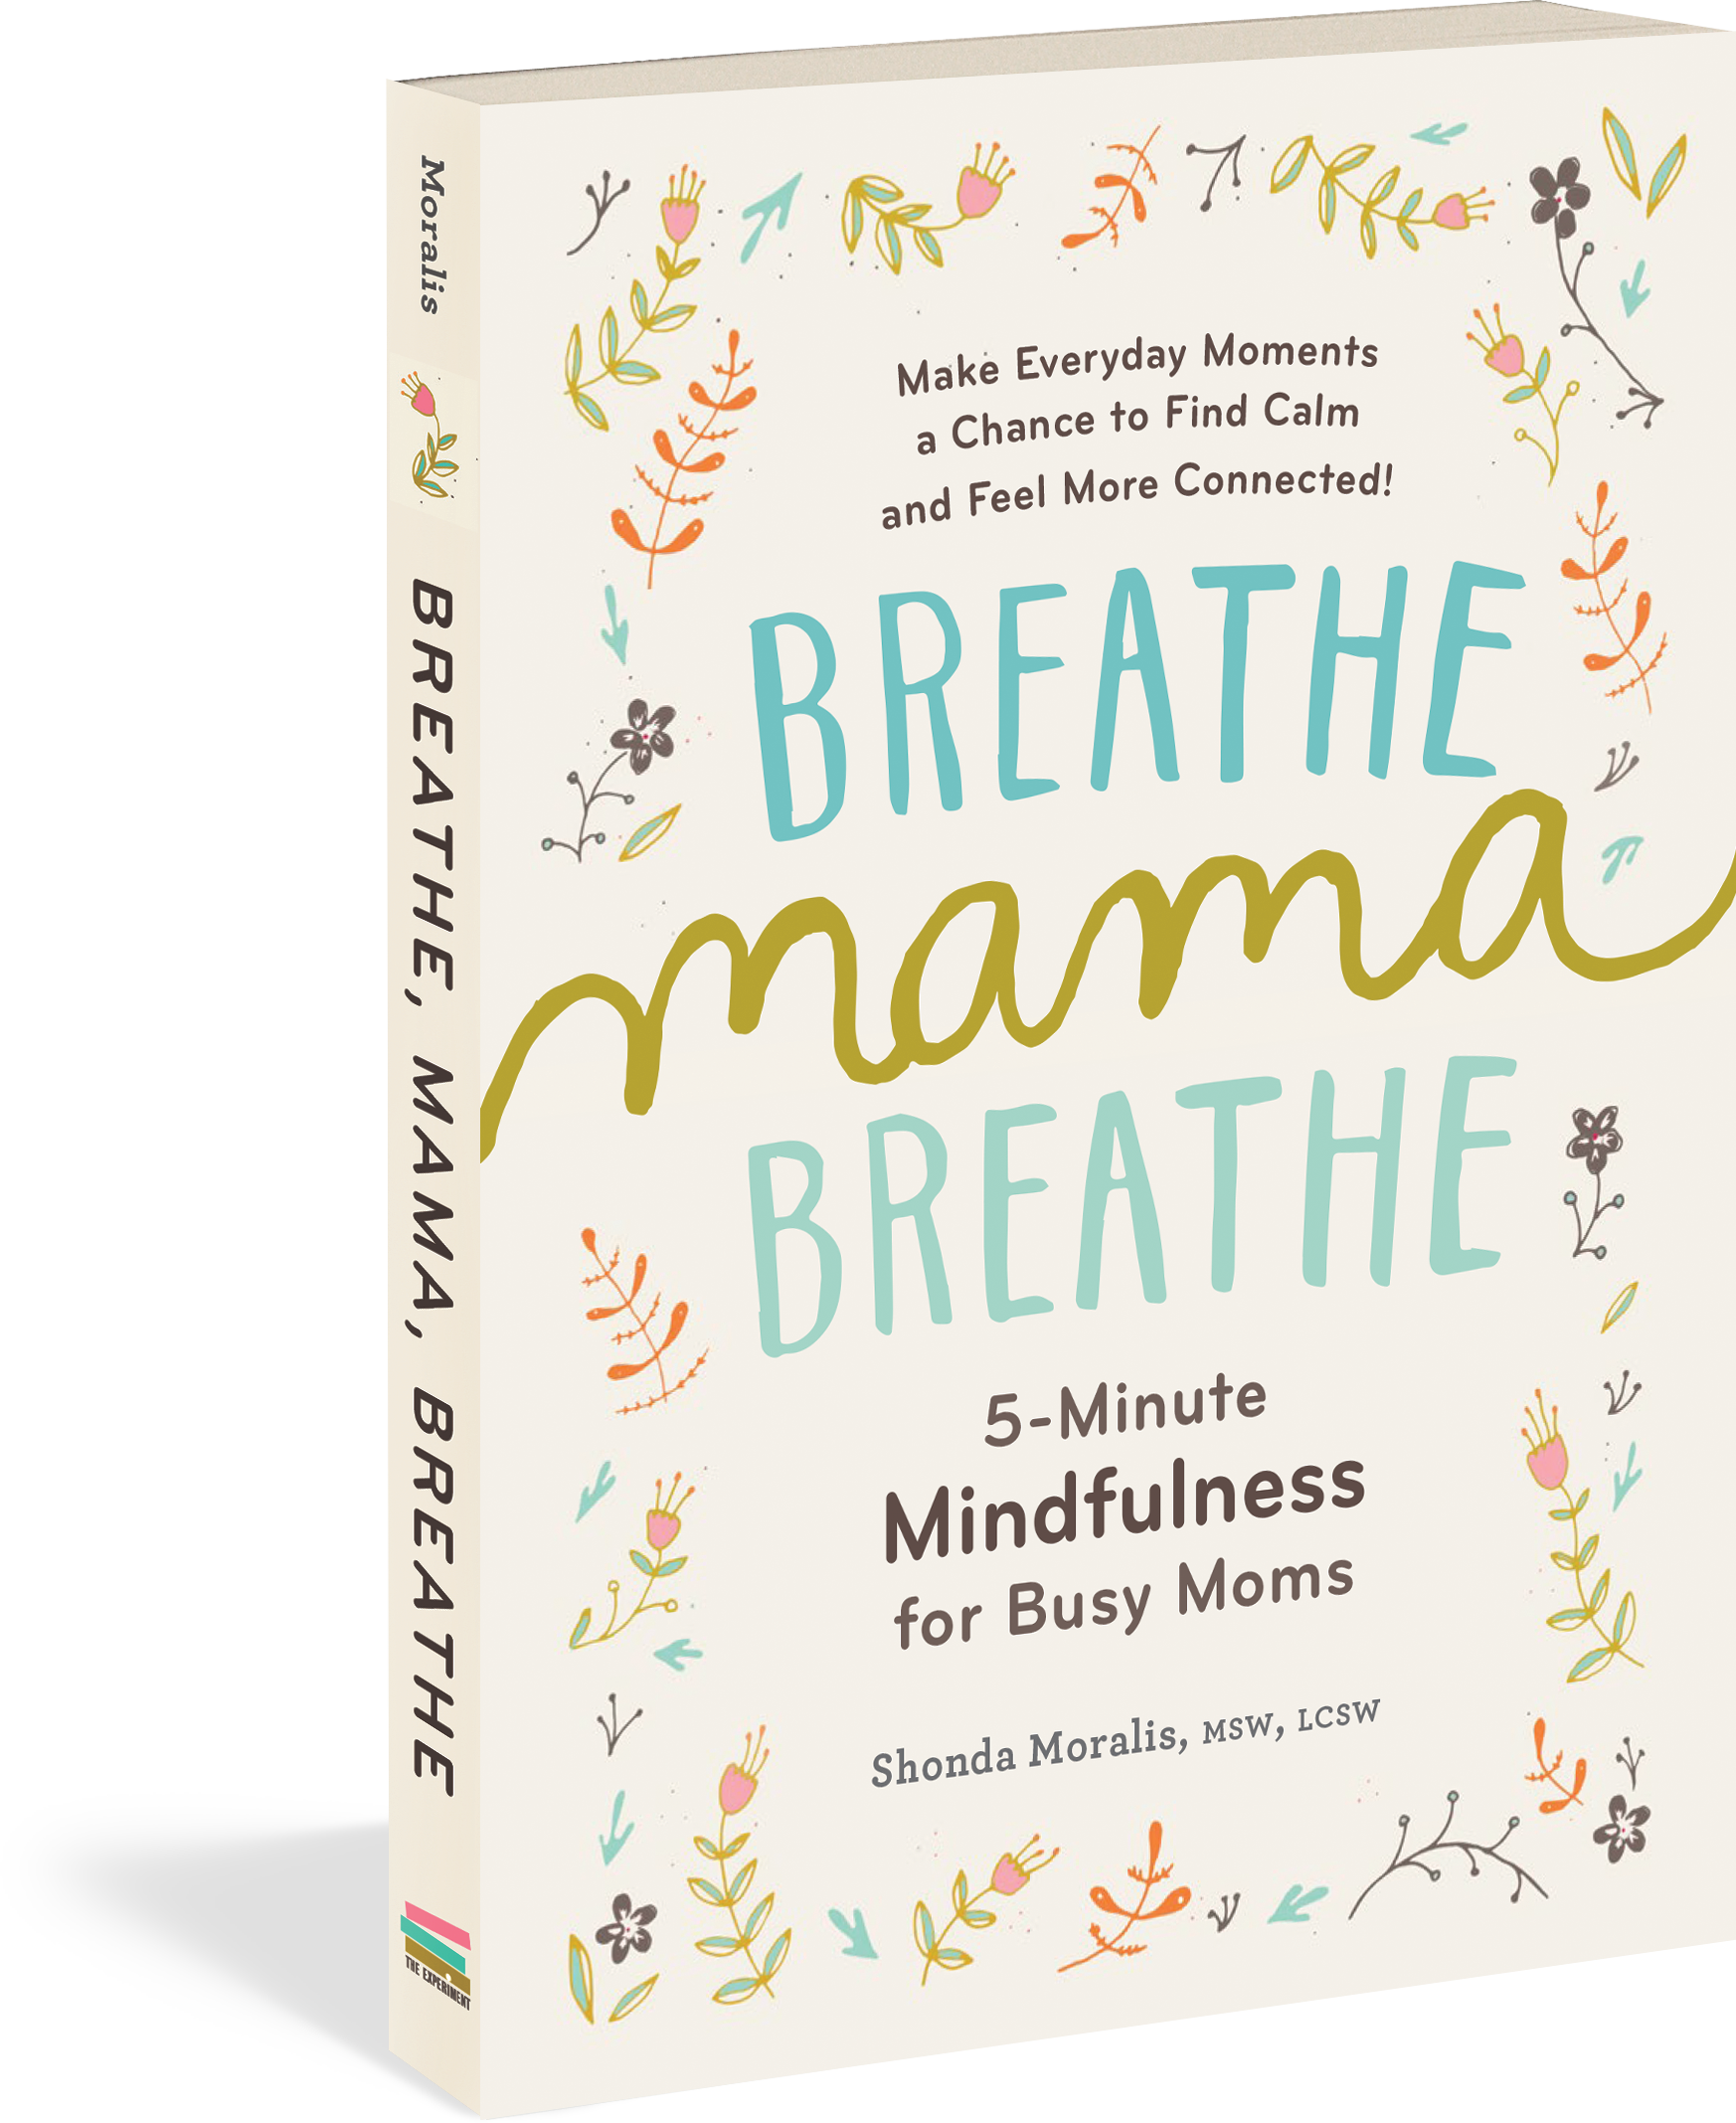 Breathe, Mama, Breathe -5-Minute Mindfulness for Busy Moms